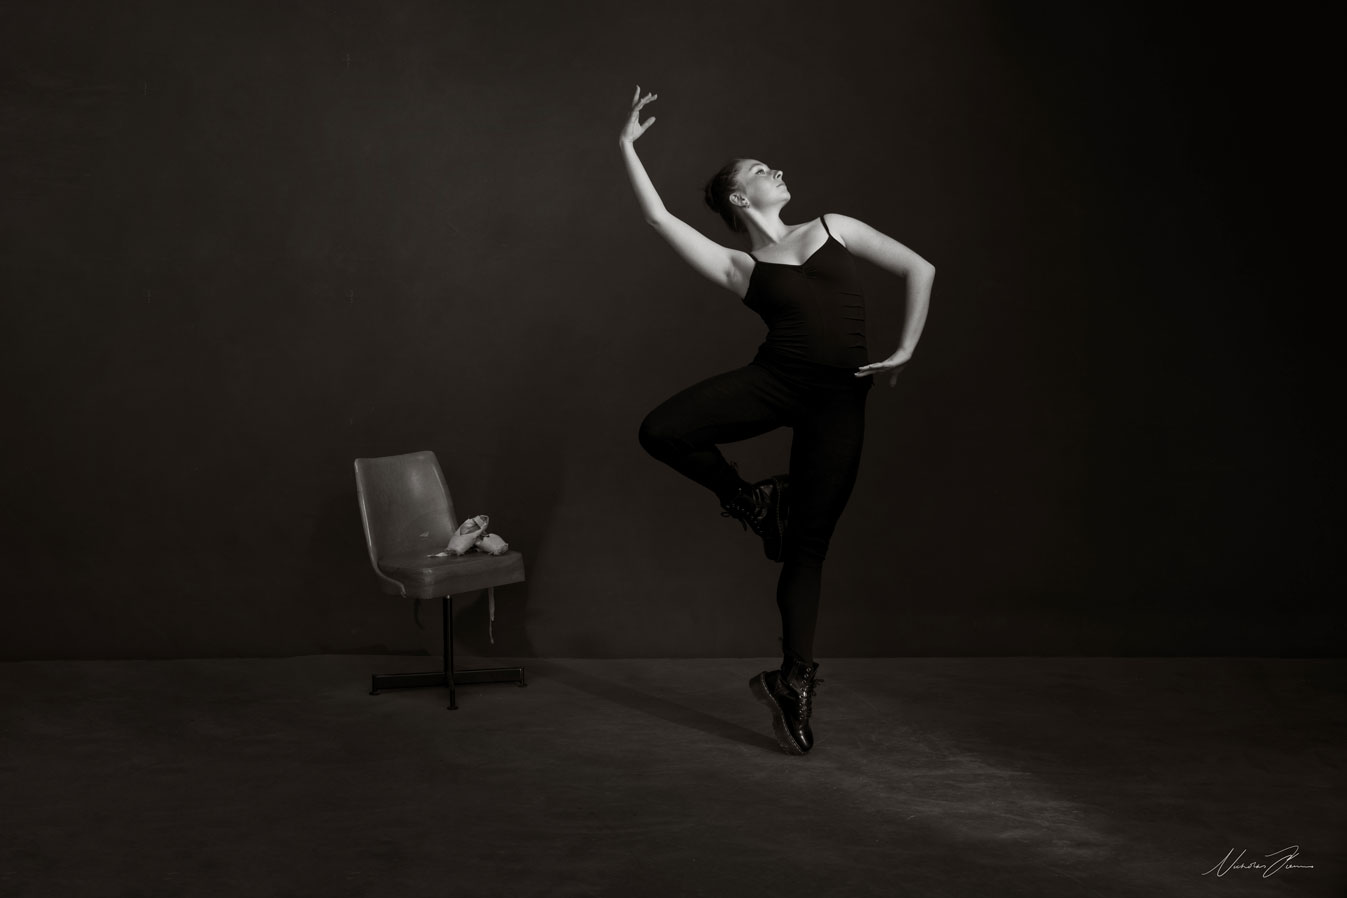 Black and white portrait of ballet and contemporary dancer Maeve Nolan, in a ballet pose wearing black tights and Dr Martins boots.